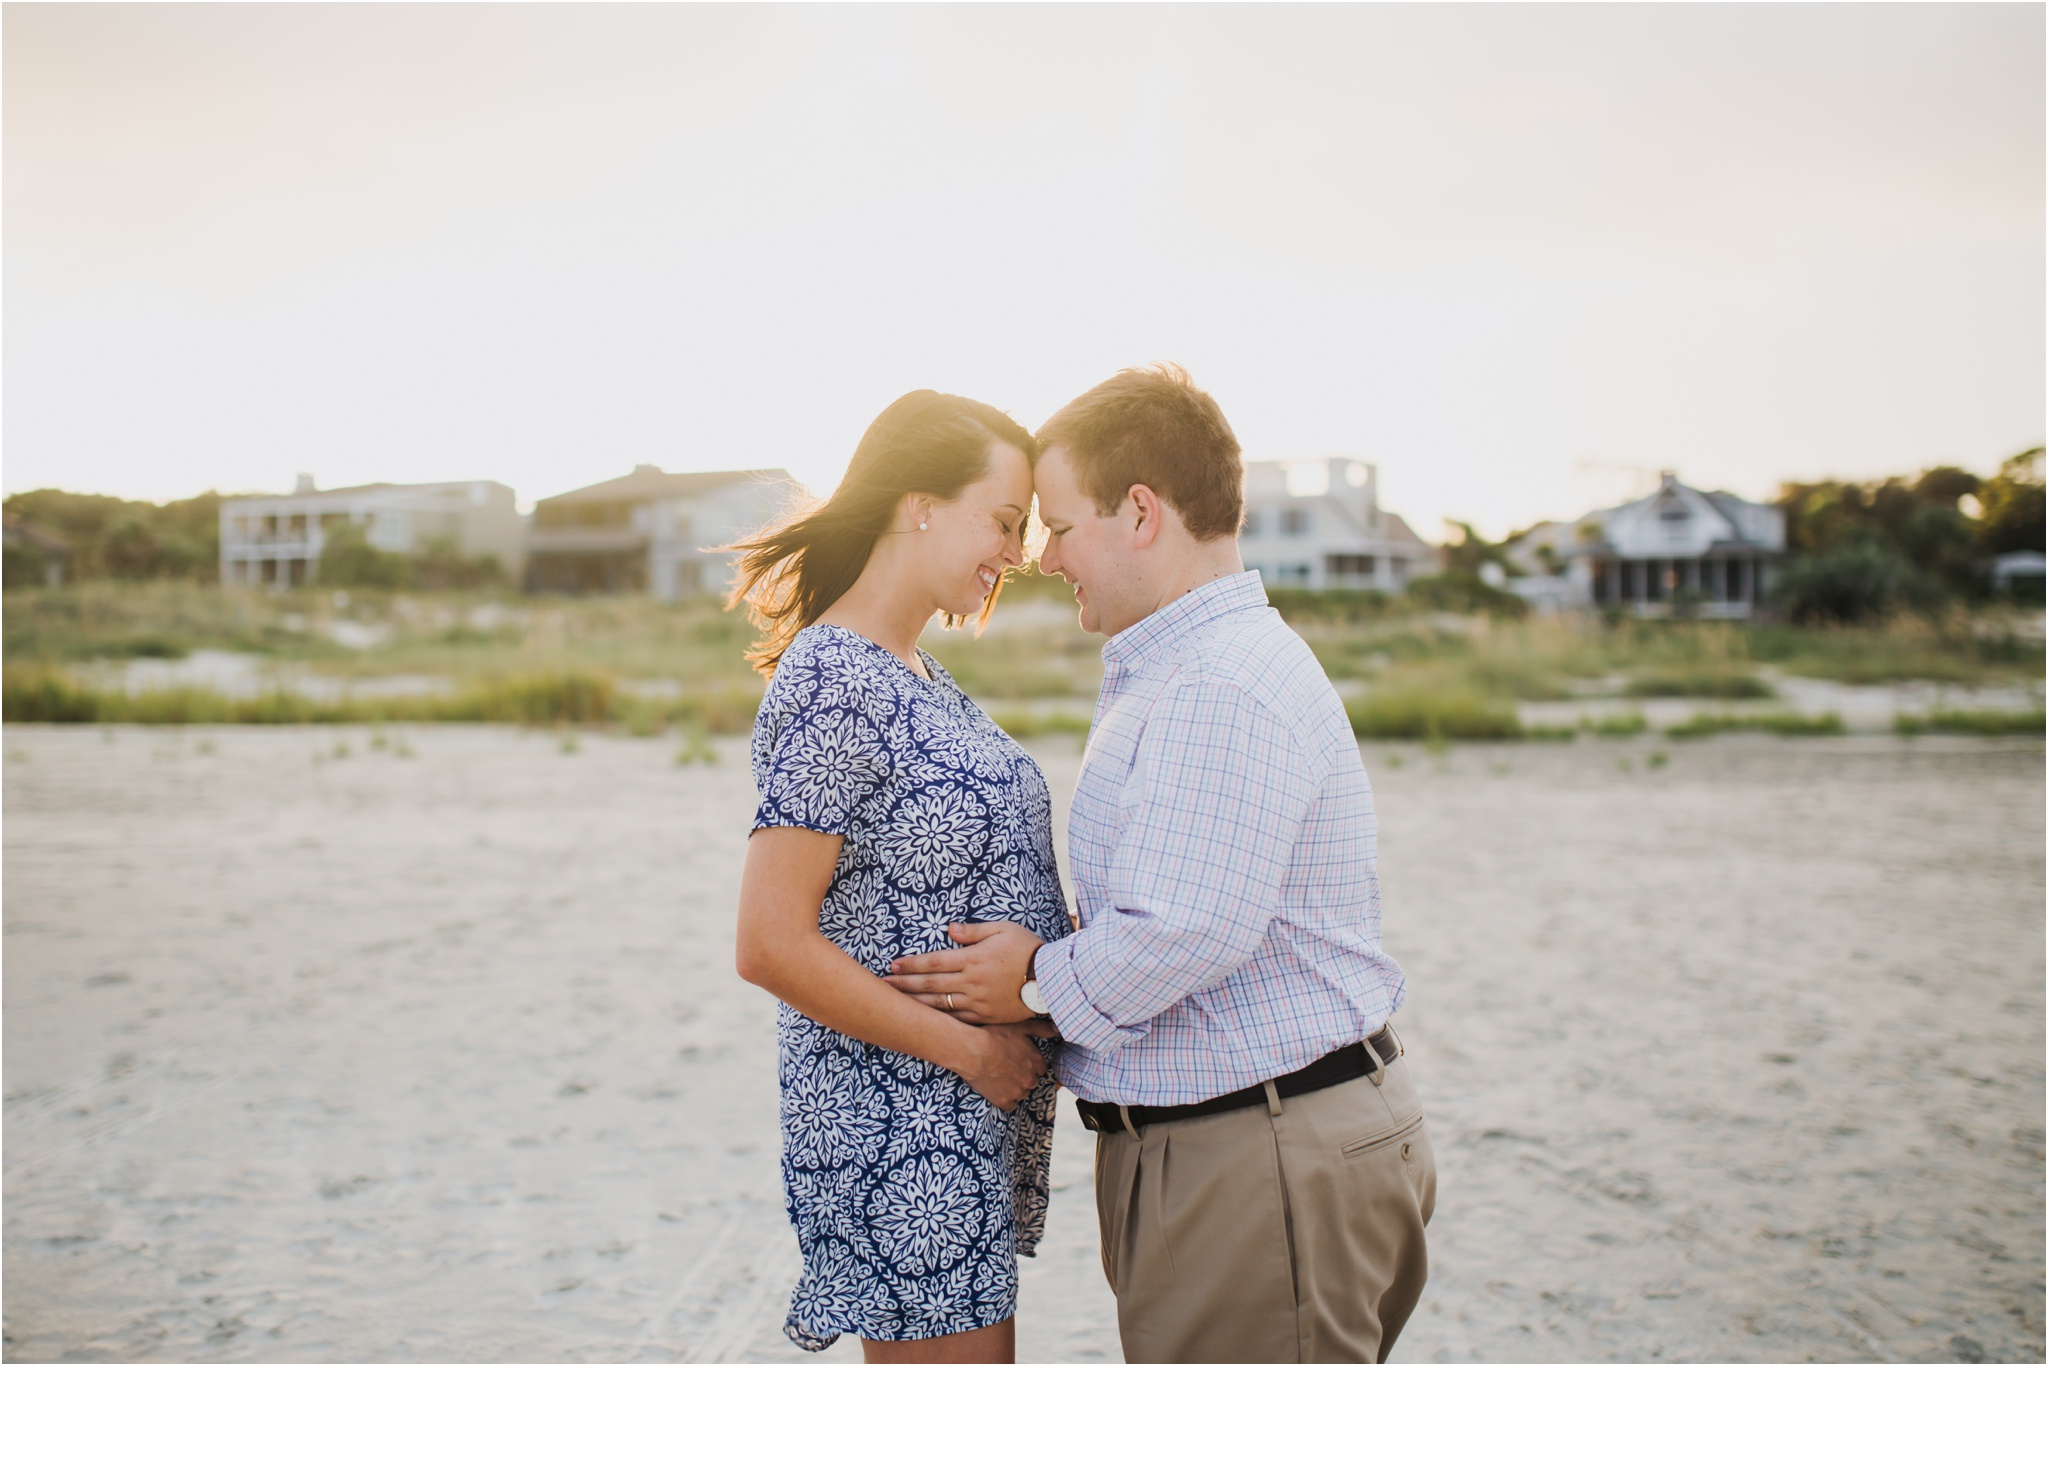 Rainey_Gregg_Photography_St._Simons_Island_Georgia_California_Wedding_Portrait_Photography_1460.jpg